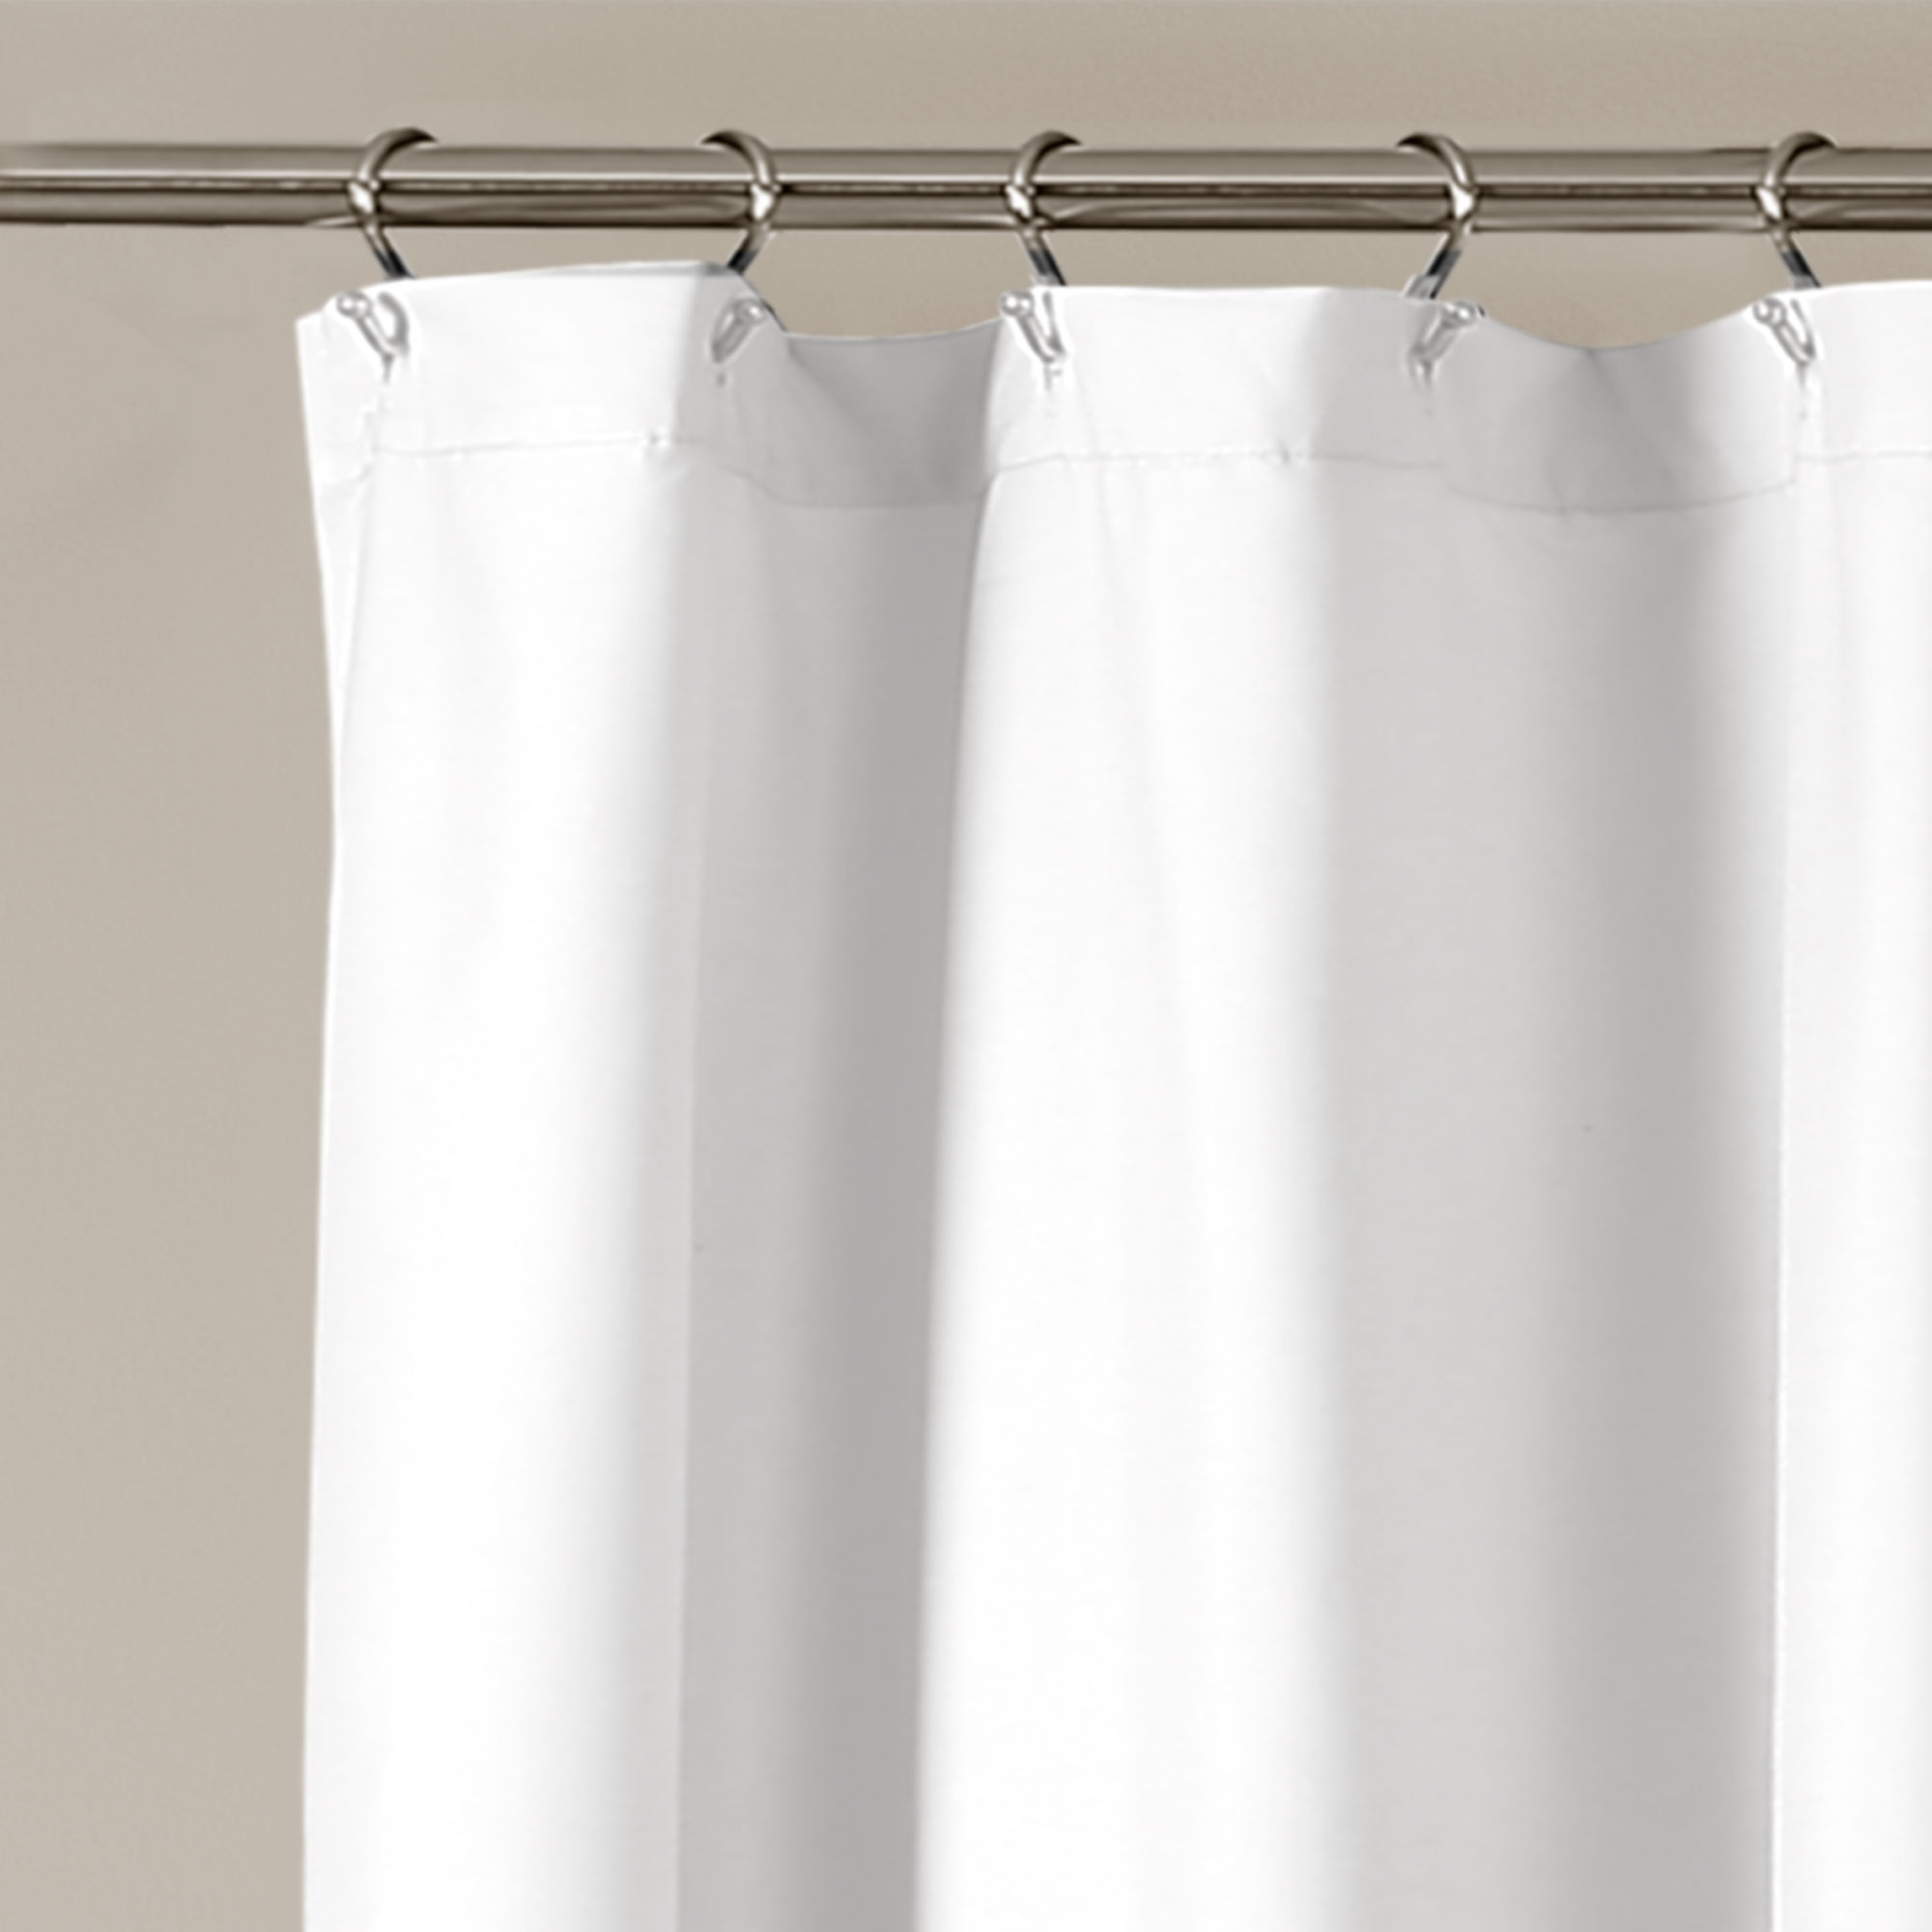 Details About Ella Lace Ruffle Shower Curtain White 72x72